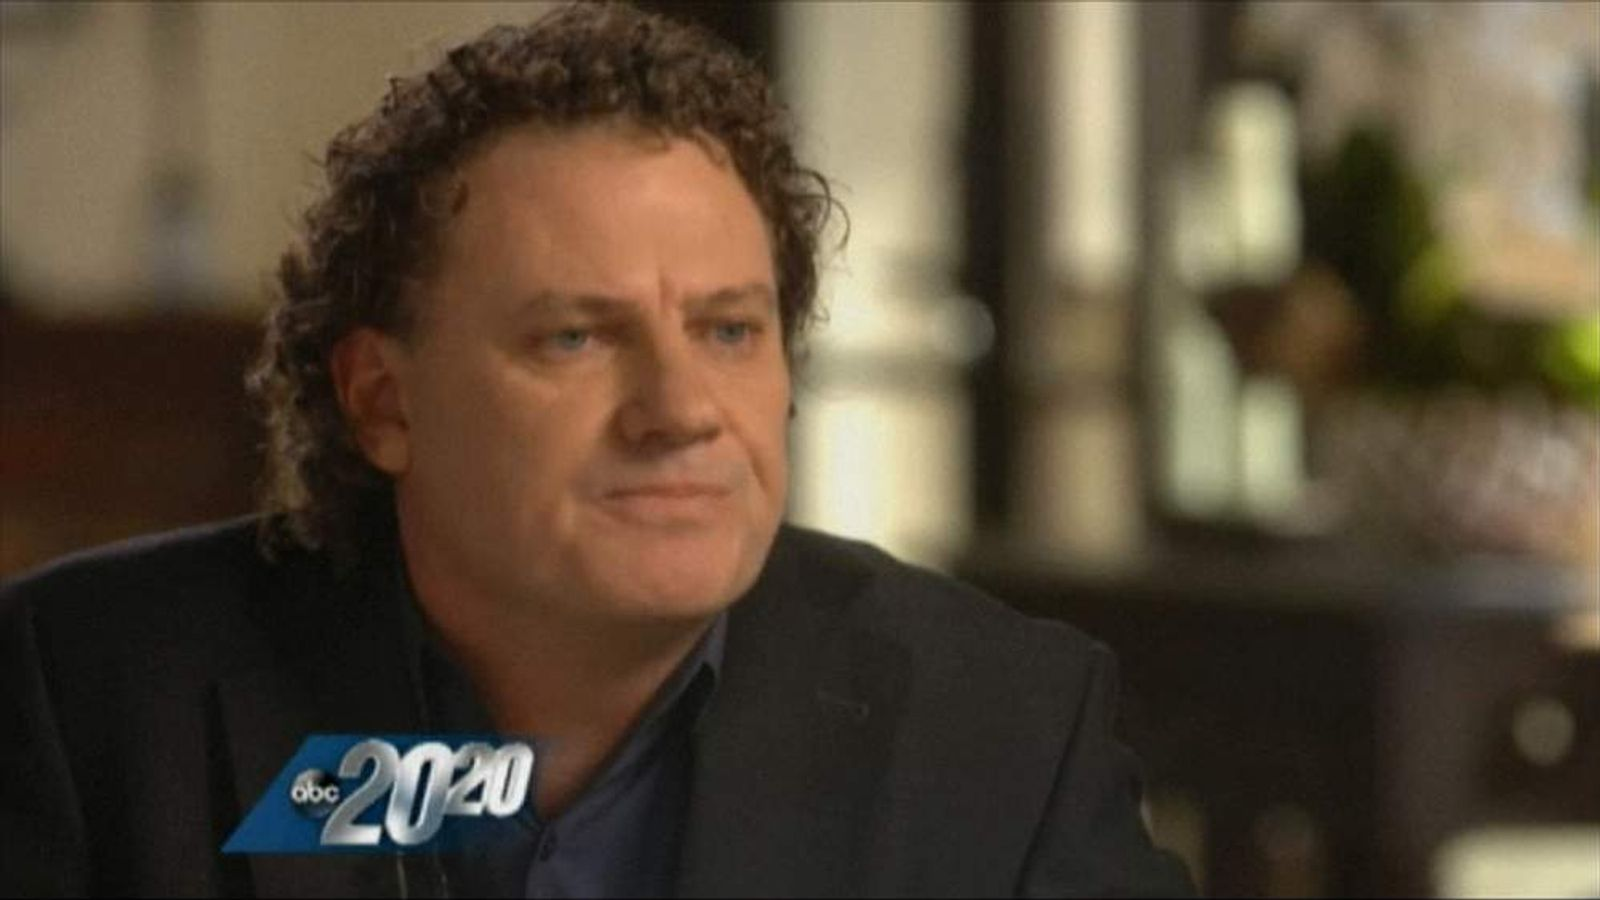 Peter Rodger In ABC News Interview About Son Elliot Rodger